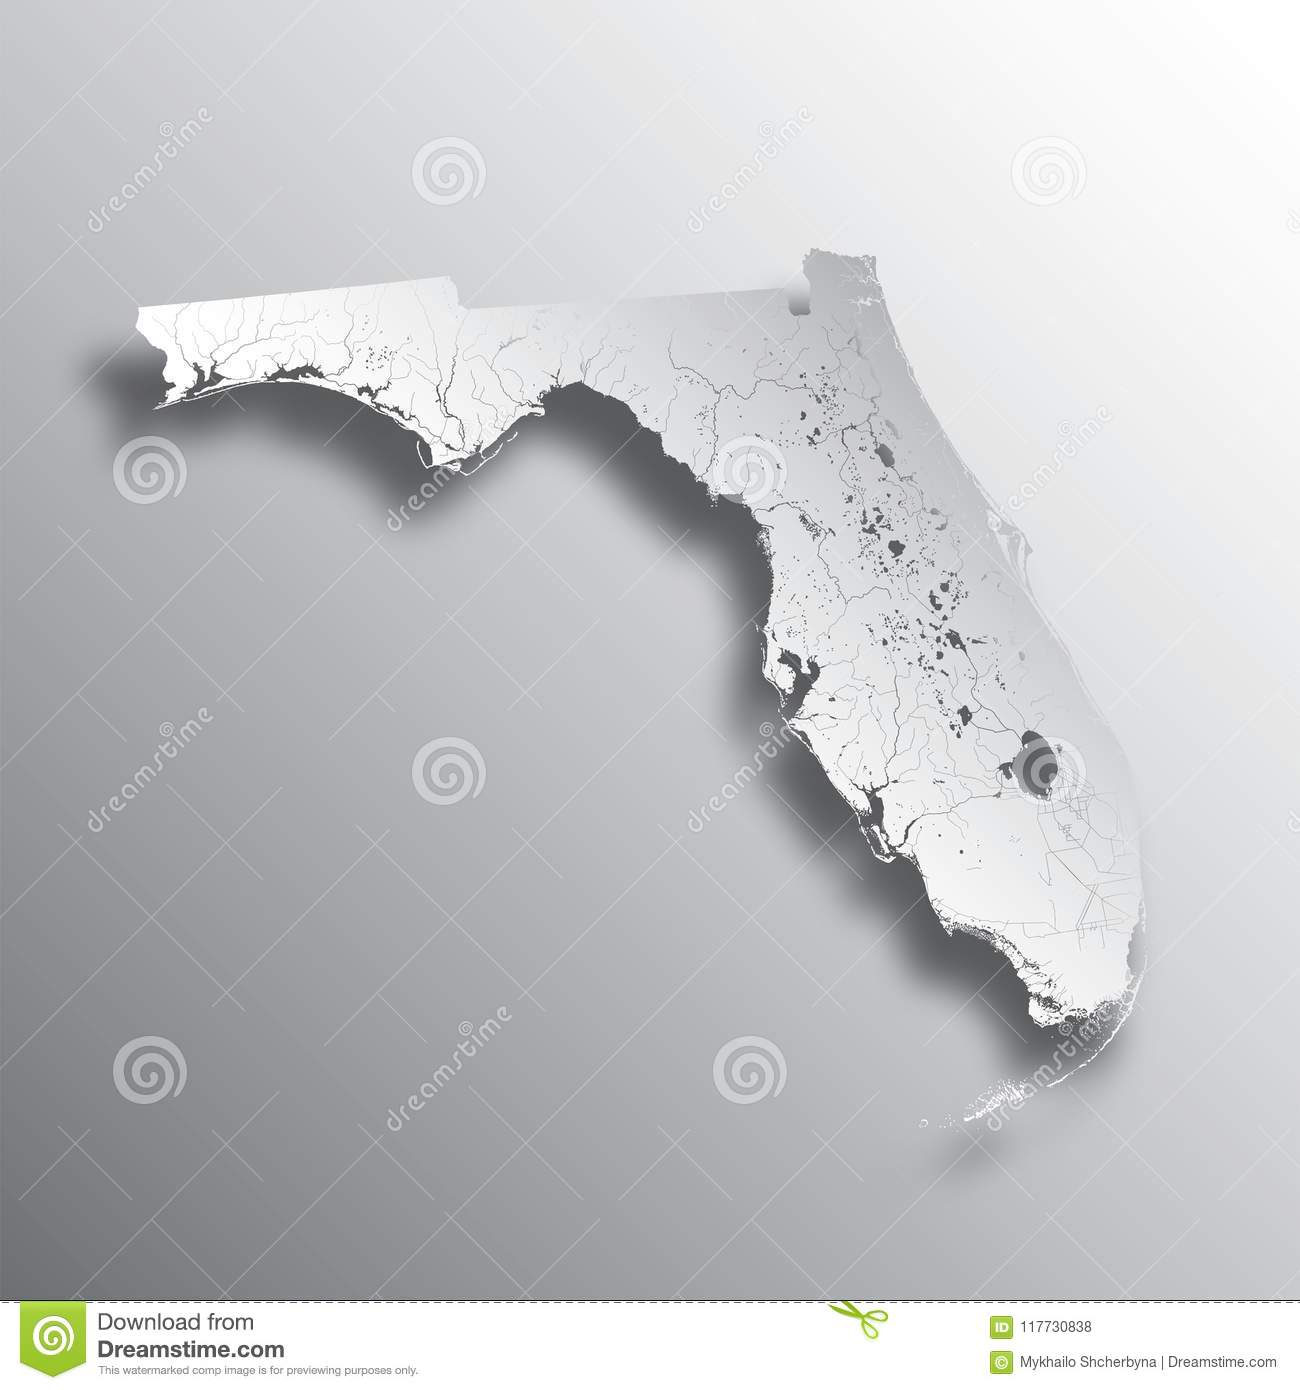 Florida Lakes Map.Map Of Florida With Lakes And Rivers Stock Vector Illustration Of